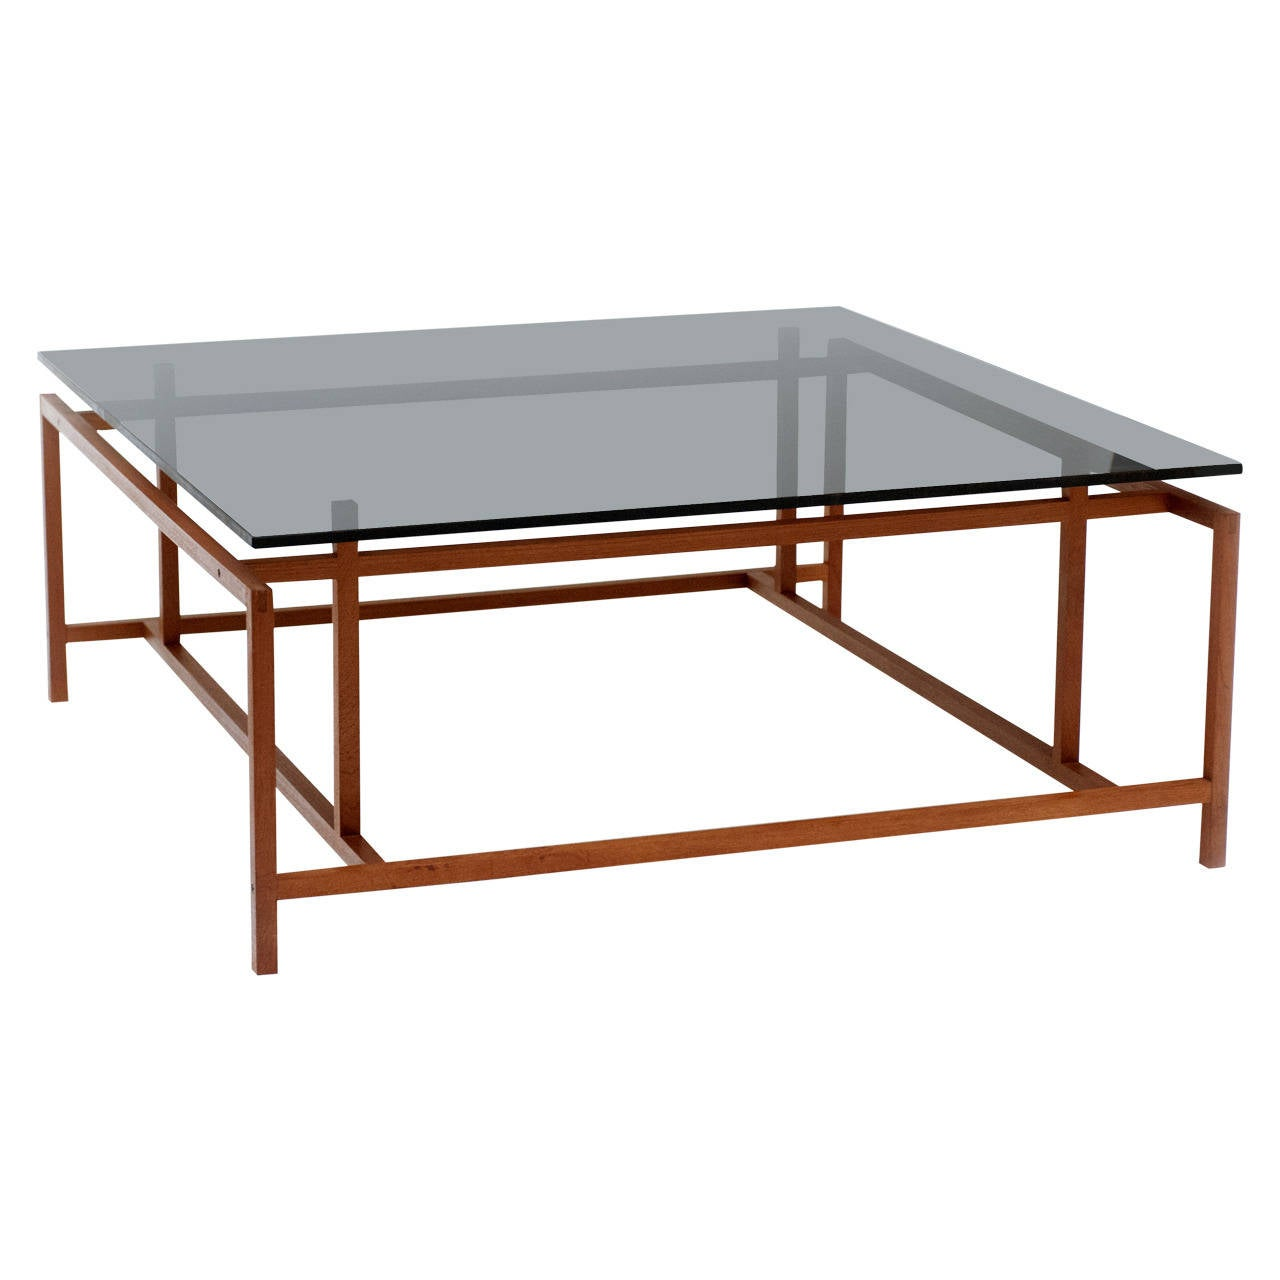 Danish Modern Large Komfort Coffee Table By Henning Norgaard At 1stdibs